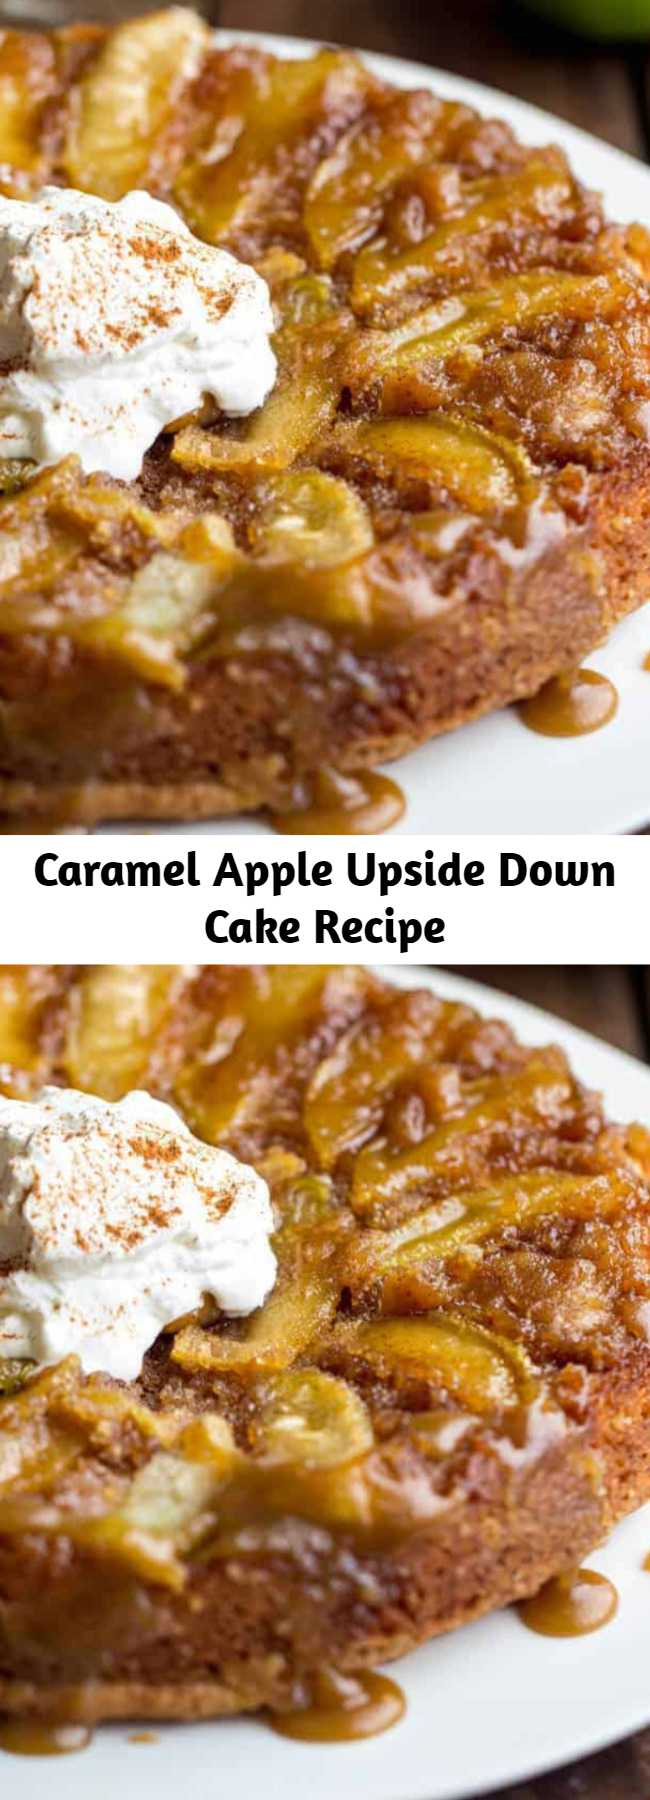 Caramel Apple Upside Down Cake Recipe - A delicious apple upside down cake that is perfectly moist and baked with apples with a brown sugar caramel glaze! This is one of the best cakes ever!